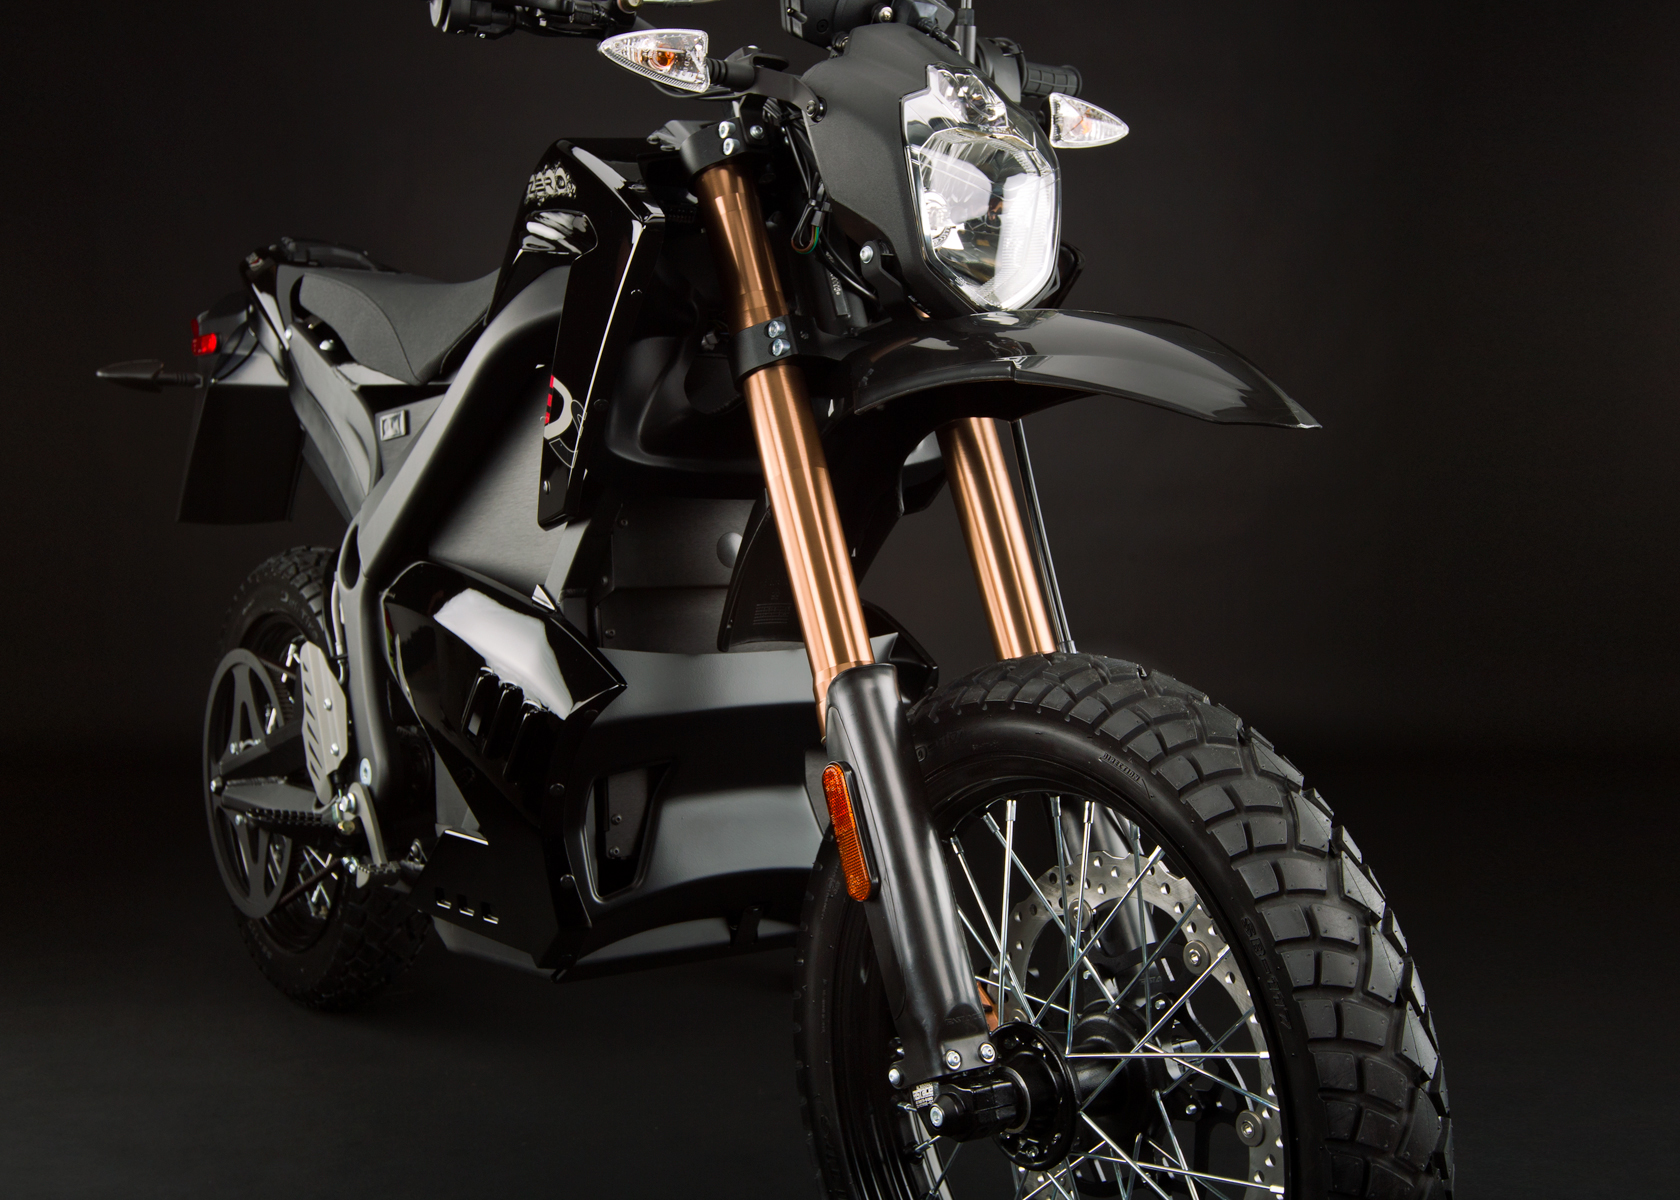 2012 Zero DS Electric Motorcycle: Front Fork